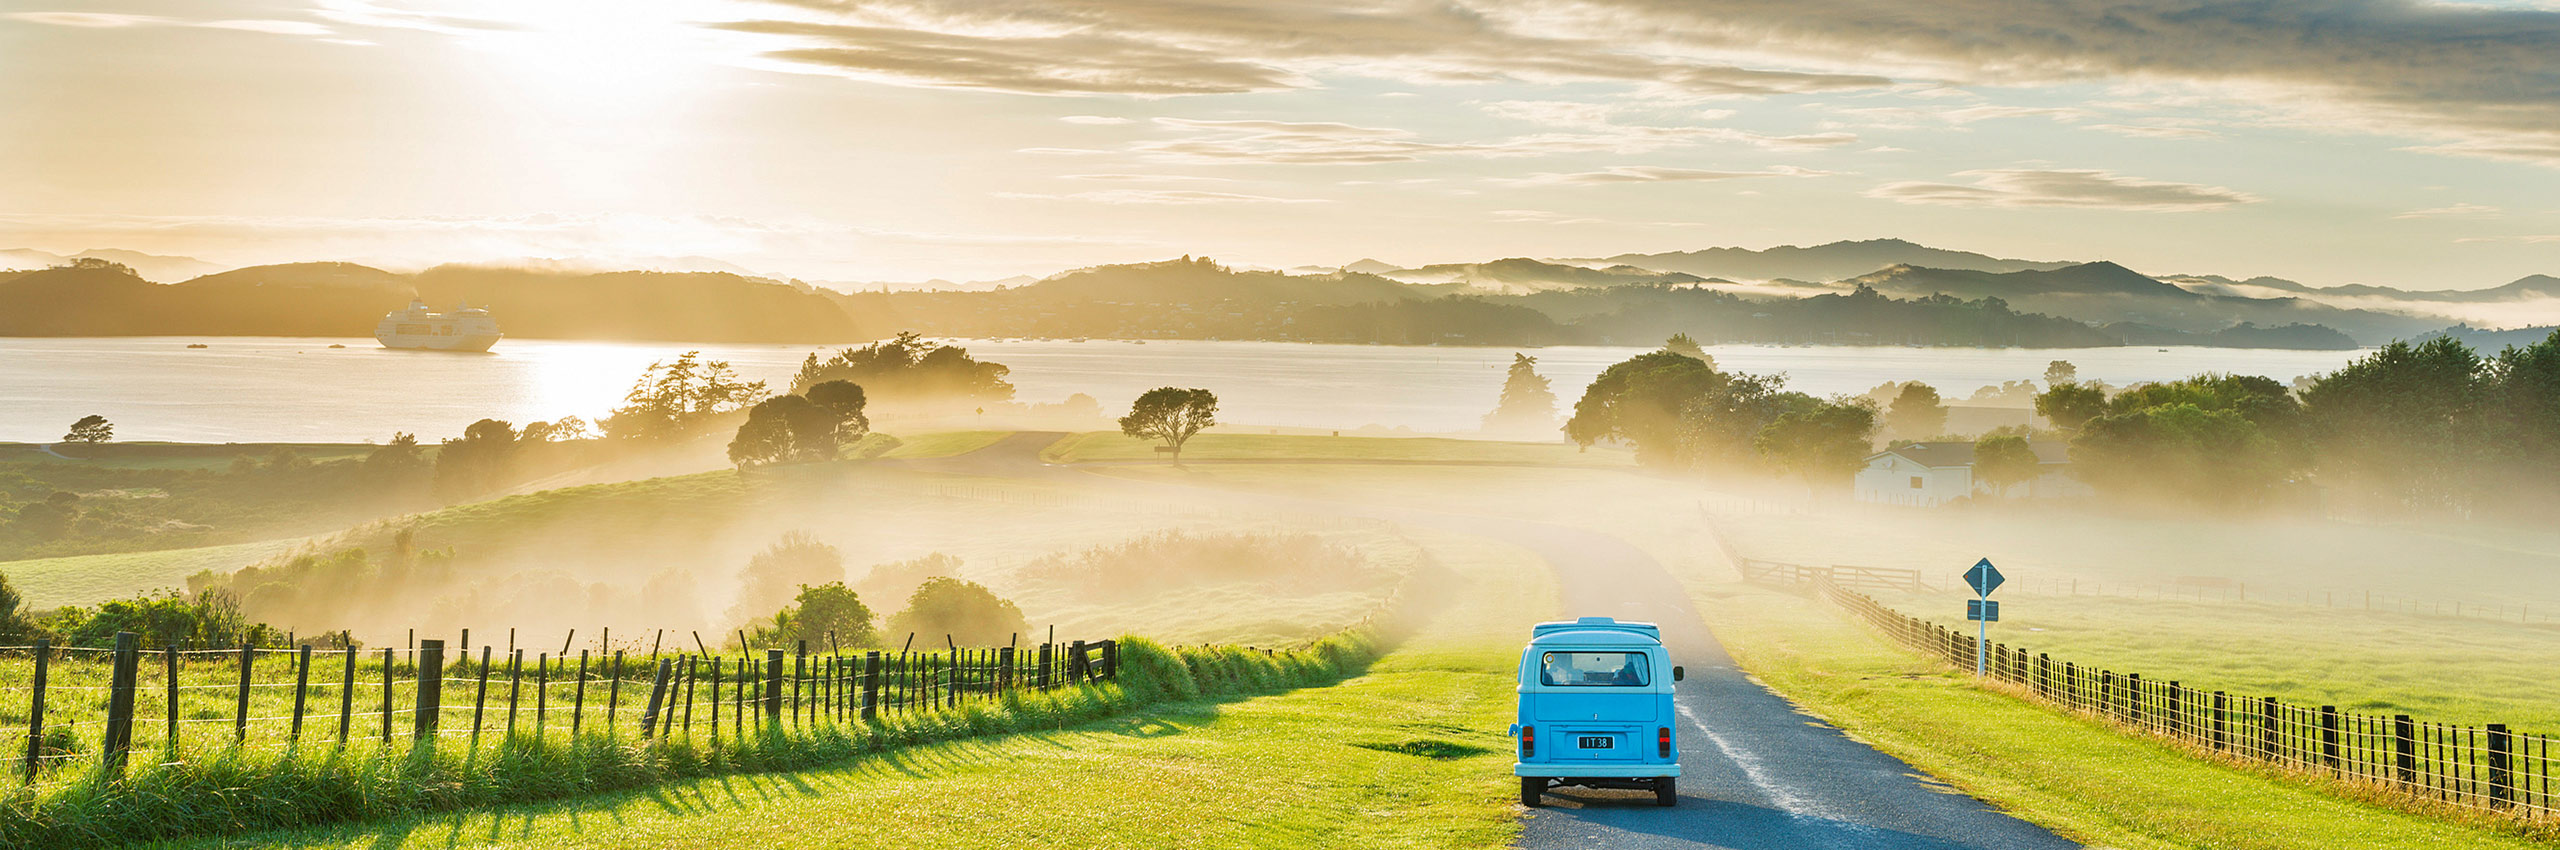 FCR-487092 | New Zealand/North Island, Bay of Islands | © Justin Foulkes/4Corners